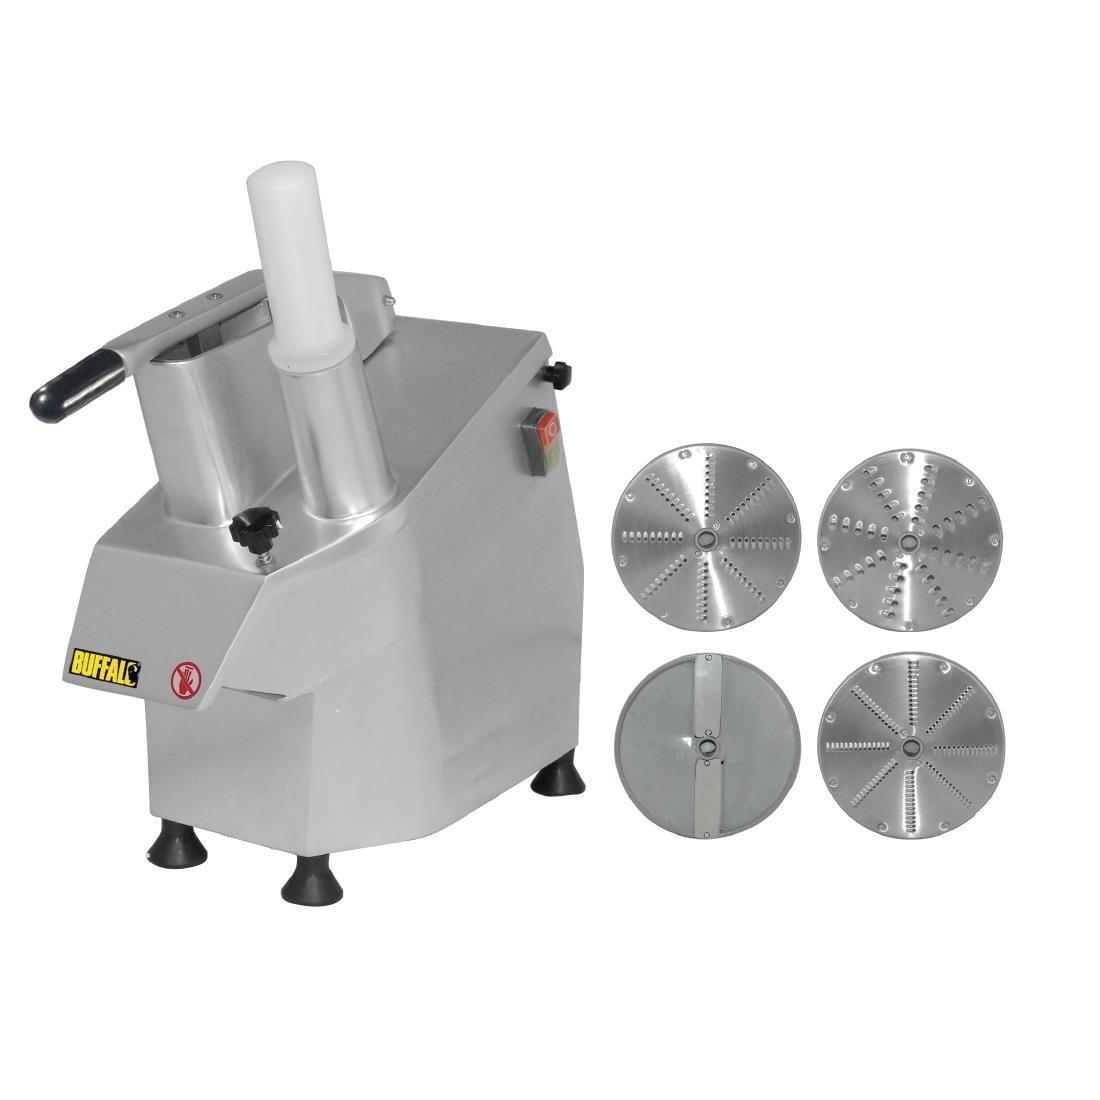 Buffalo Continuous Veg Prep Machine with 4 Discs - S547